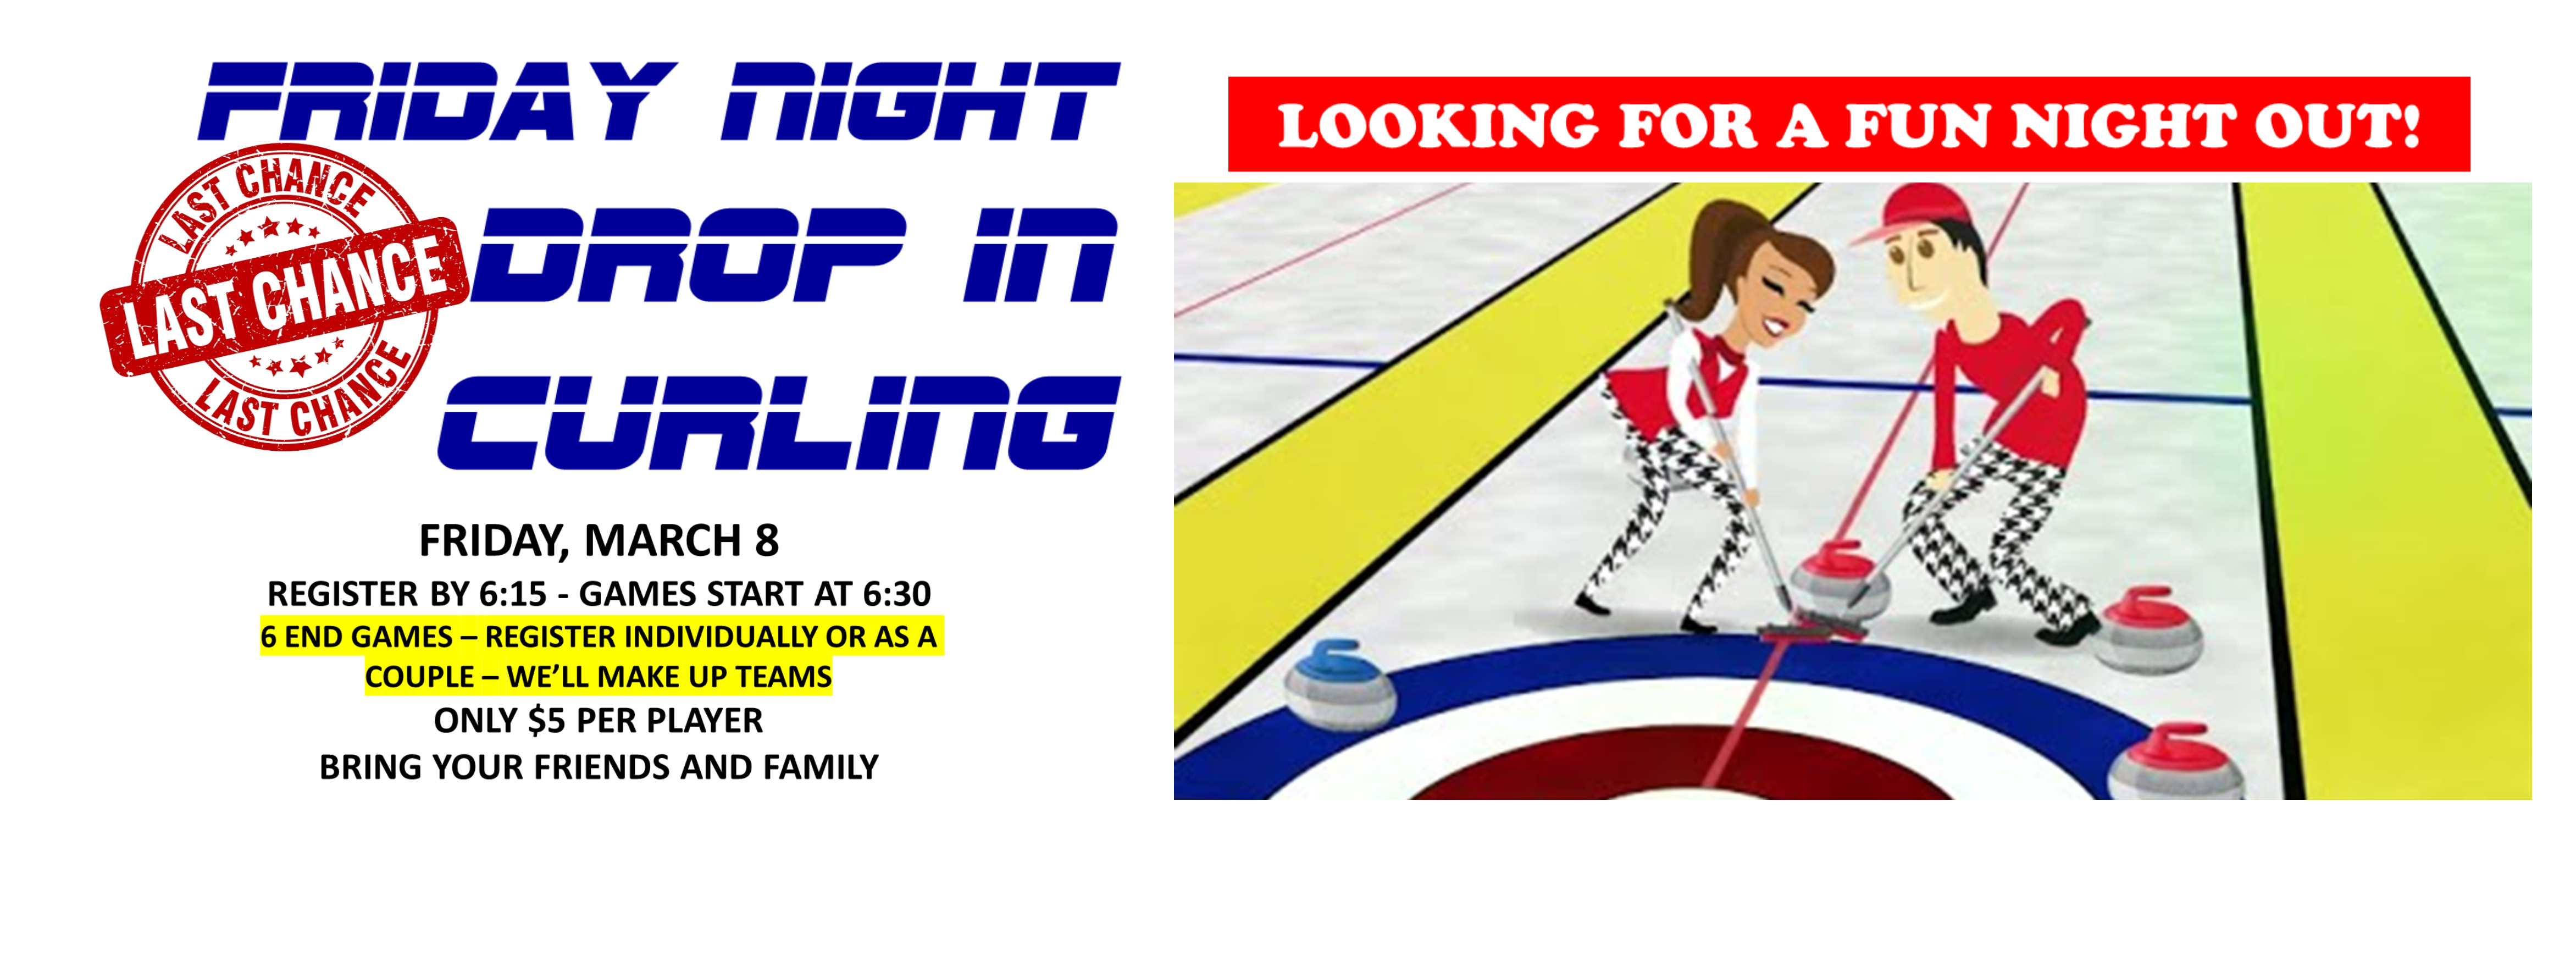 <div id=slideshow_title>Drop In Curling Returns</div> <br><div style='text-align: left; font-size: 18px;'>2 more Dates this year</div>